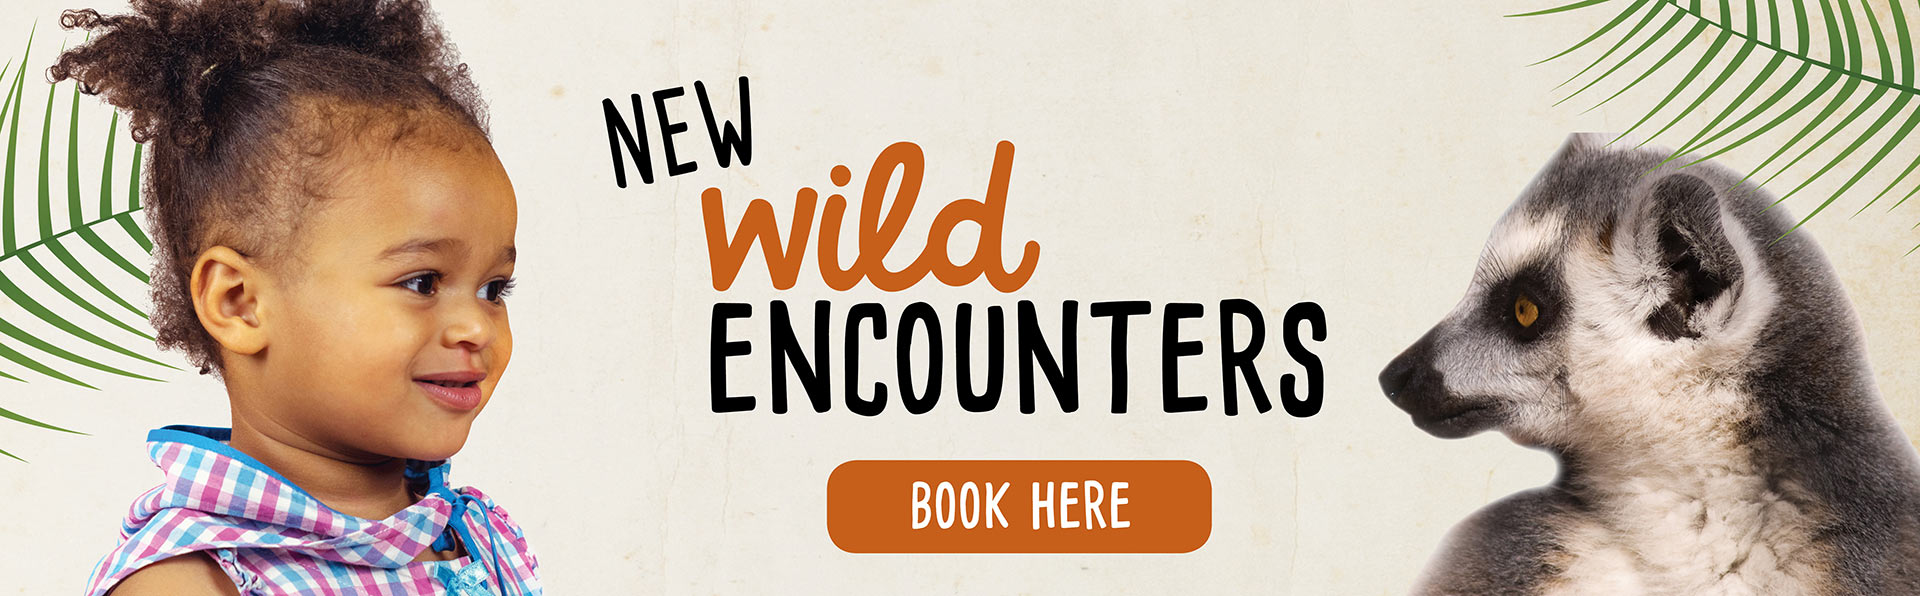 New Wild Encounters